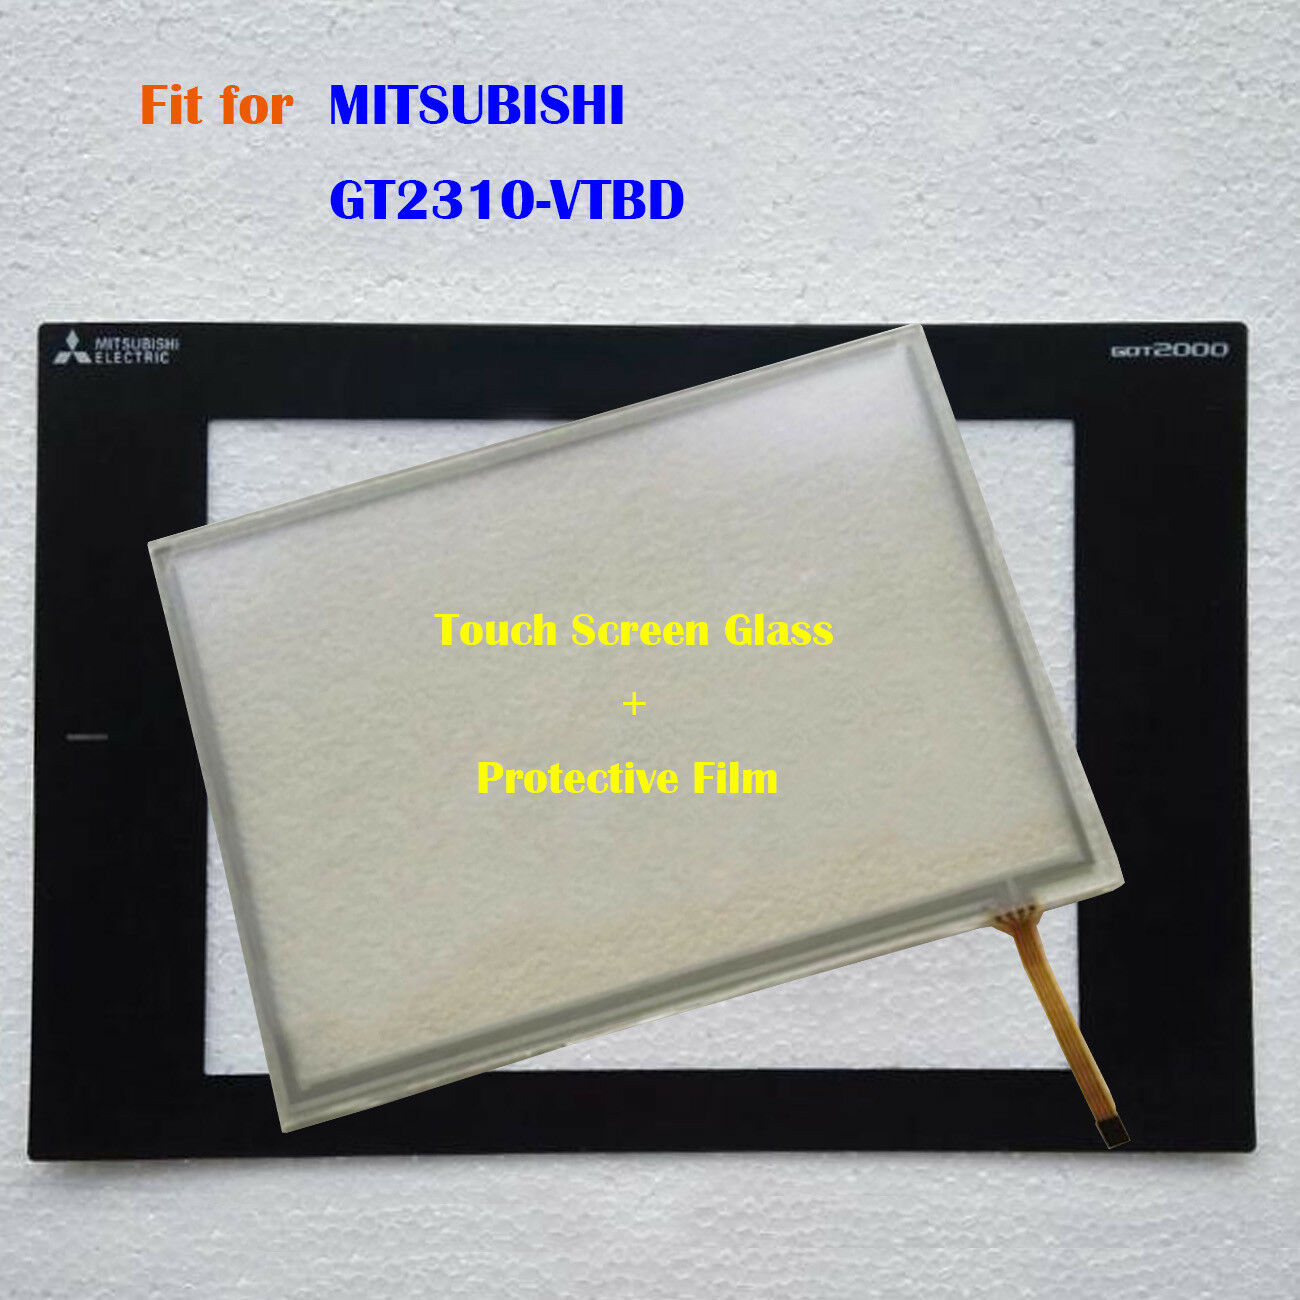 For MITSUBISHI GT2310-VTBD, GT2310VTBD Touch Screen Glass + Predective Film New